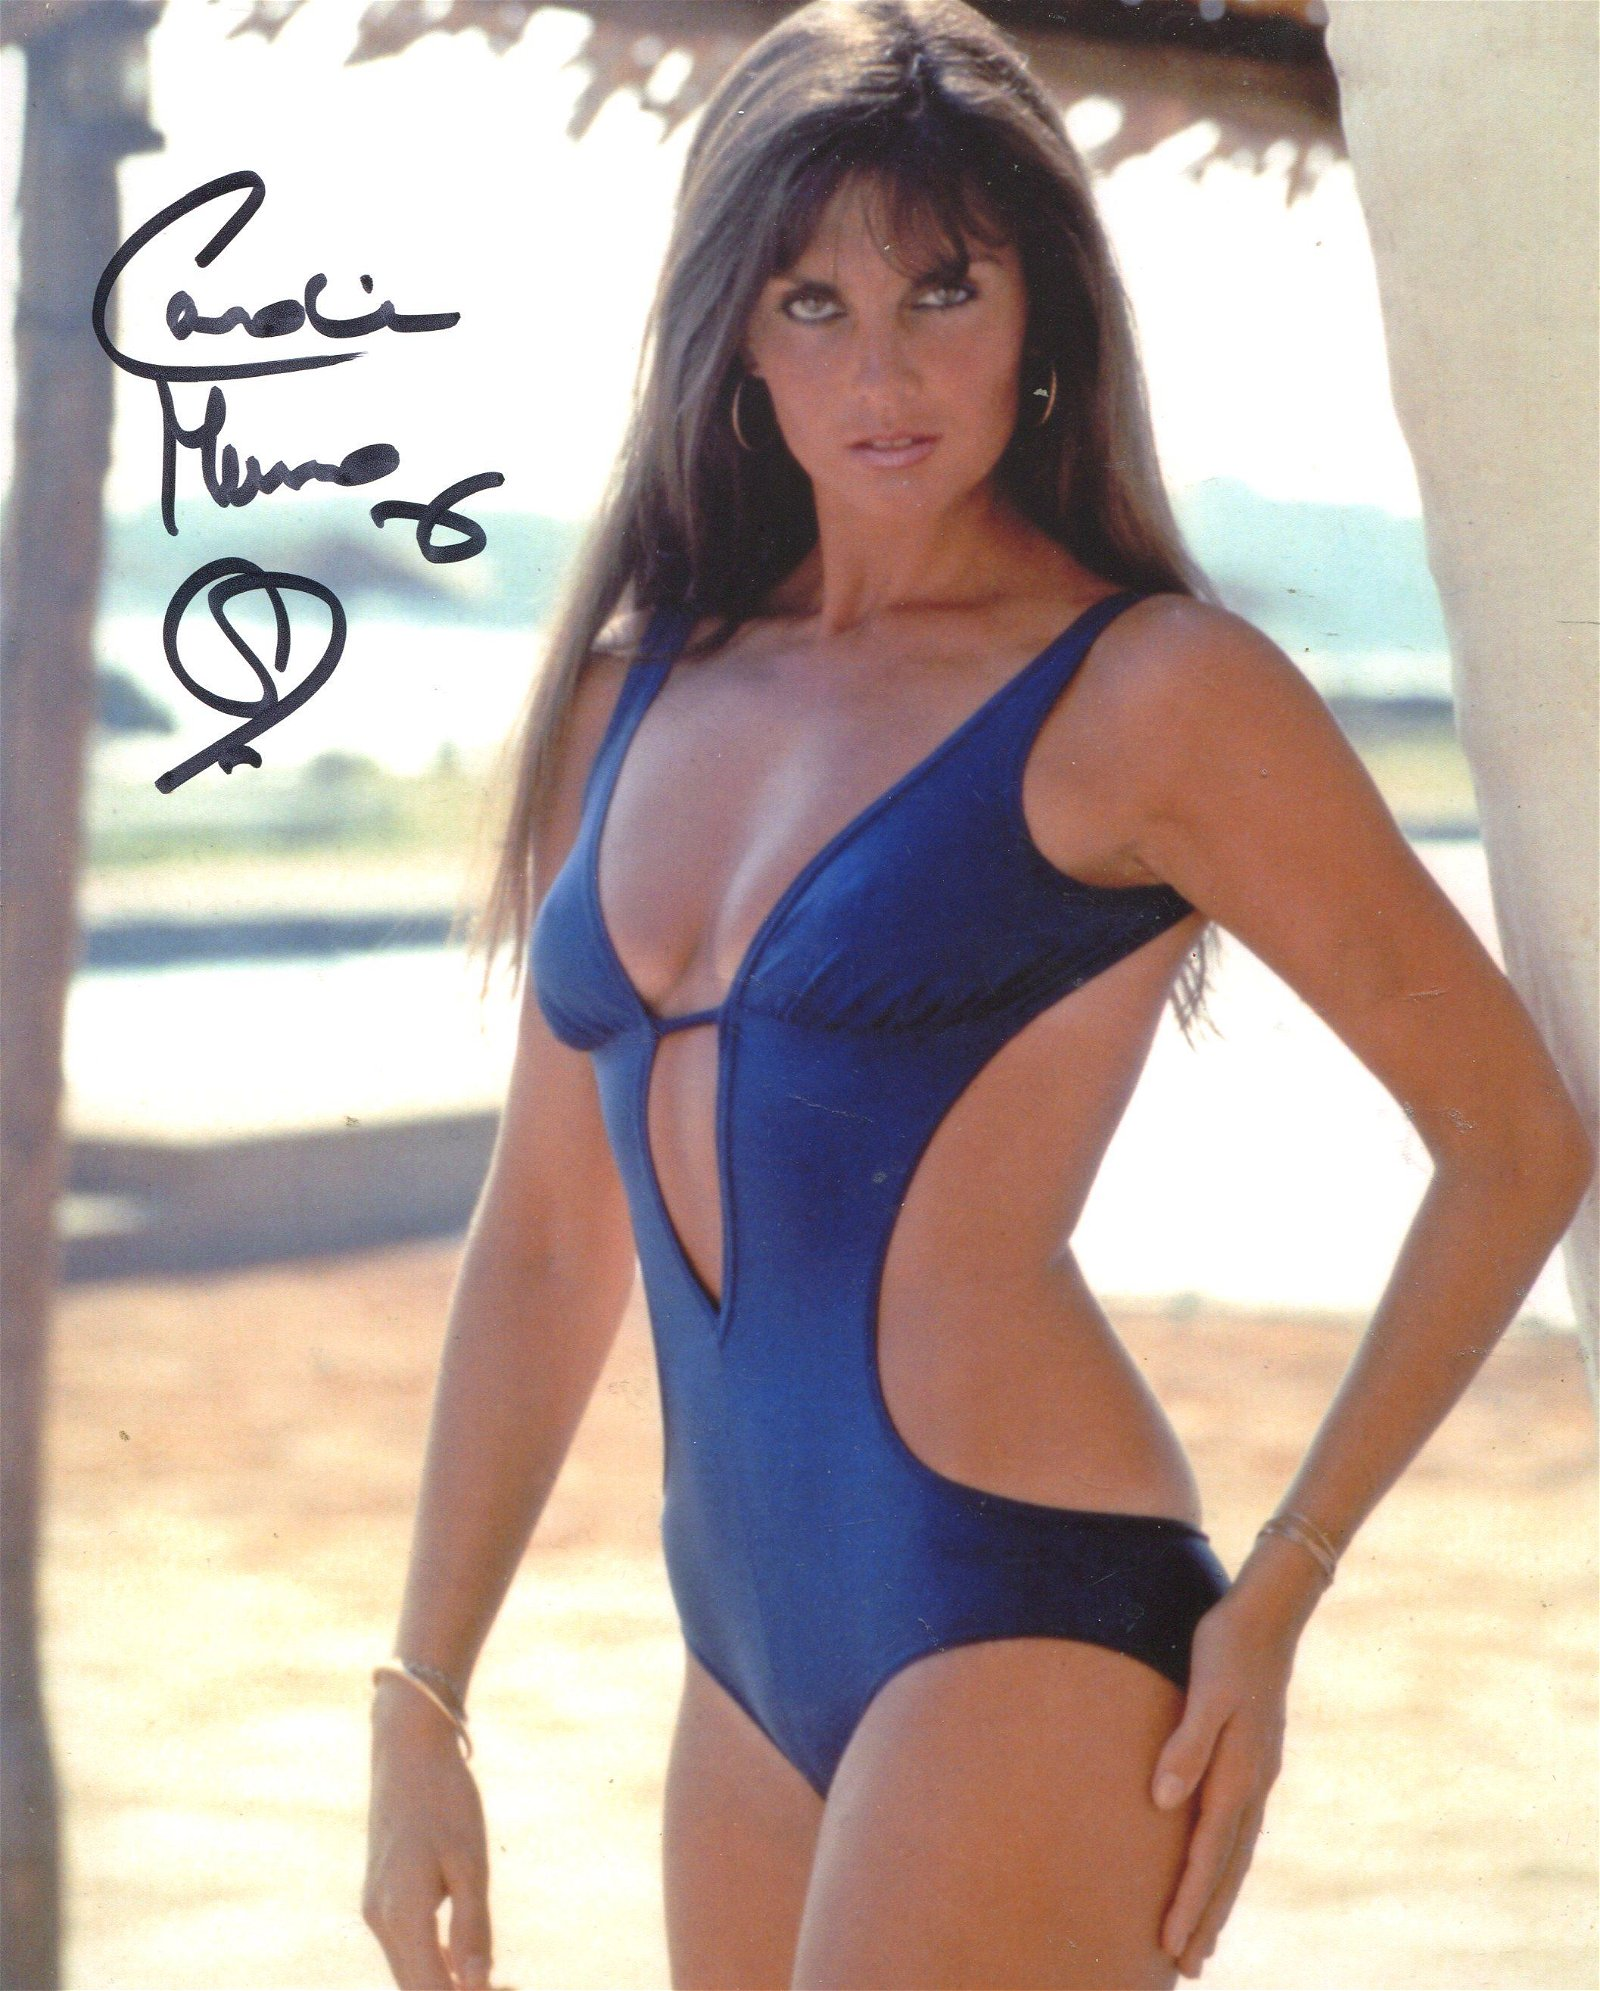 Bond girl. 8x10 inch photo signed by The Spy Who Loved